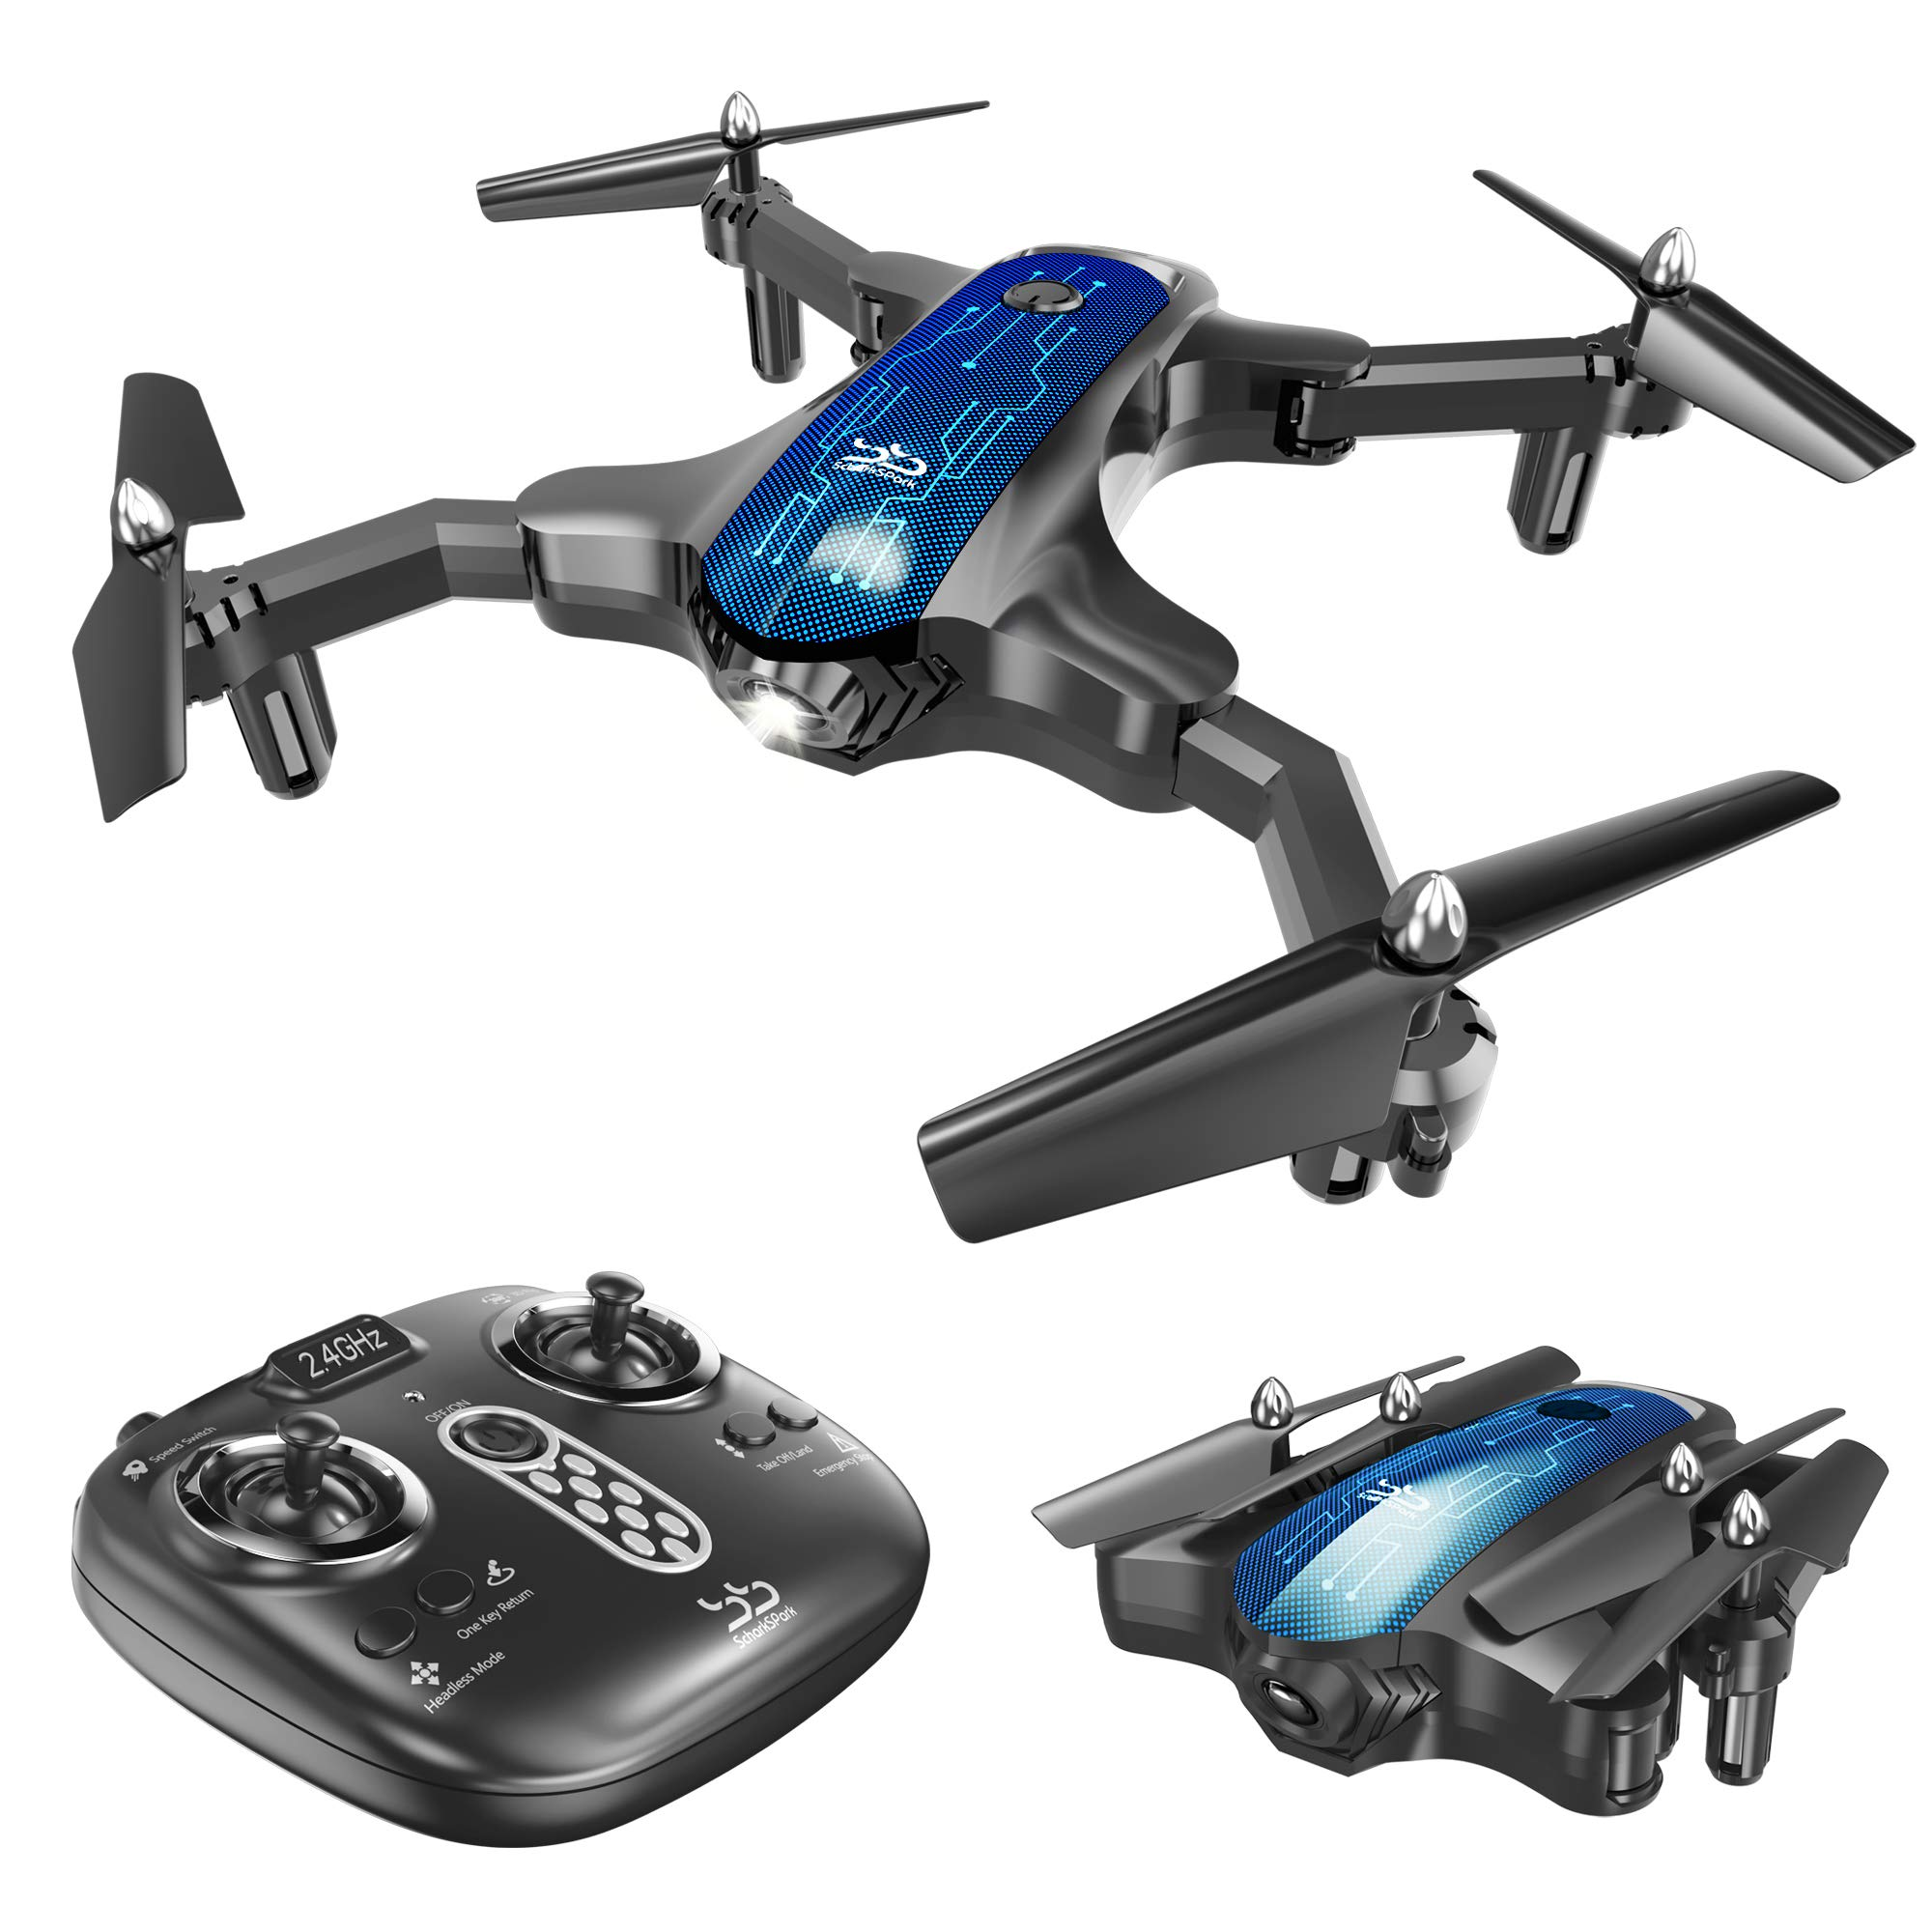 ScharkSpark Drone for Beginners, Portable RC Quadcopter with Foldable Arms Indoor/Outdoor Play, 6-Axis Gyro One-Key Return/Headless Mode/Altitude Hold/3D Flips, Warrior II